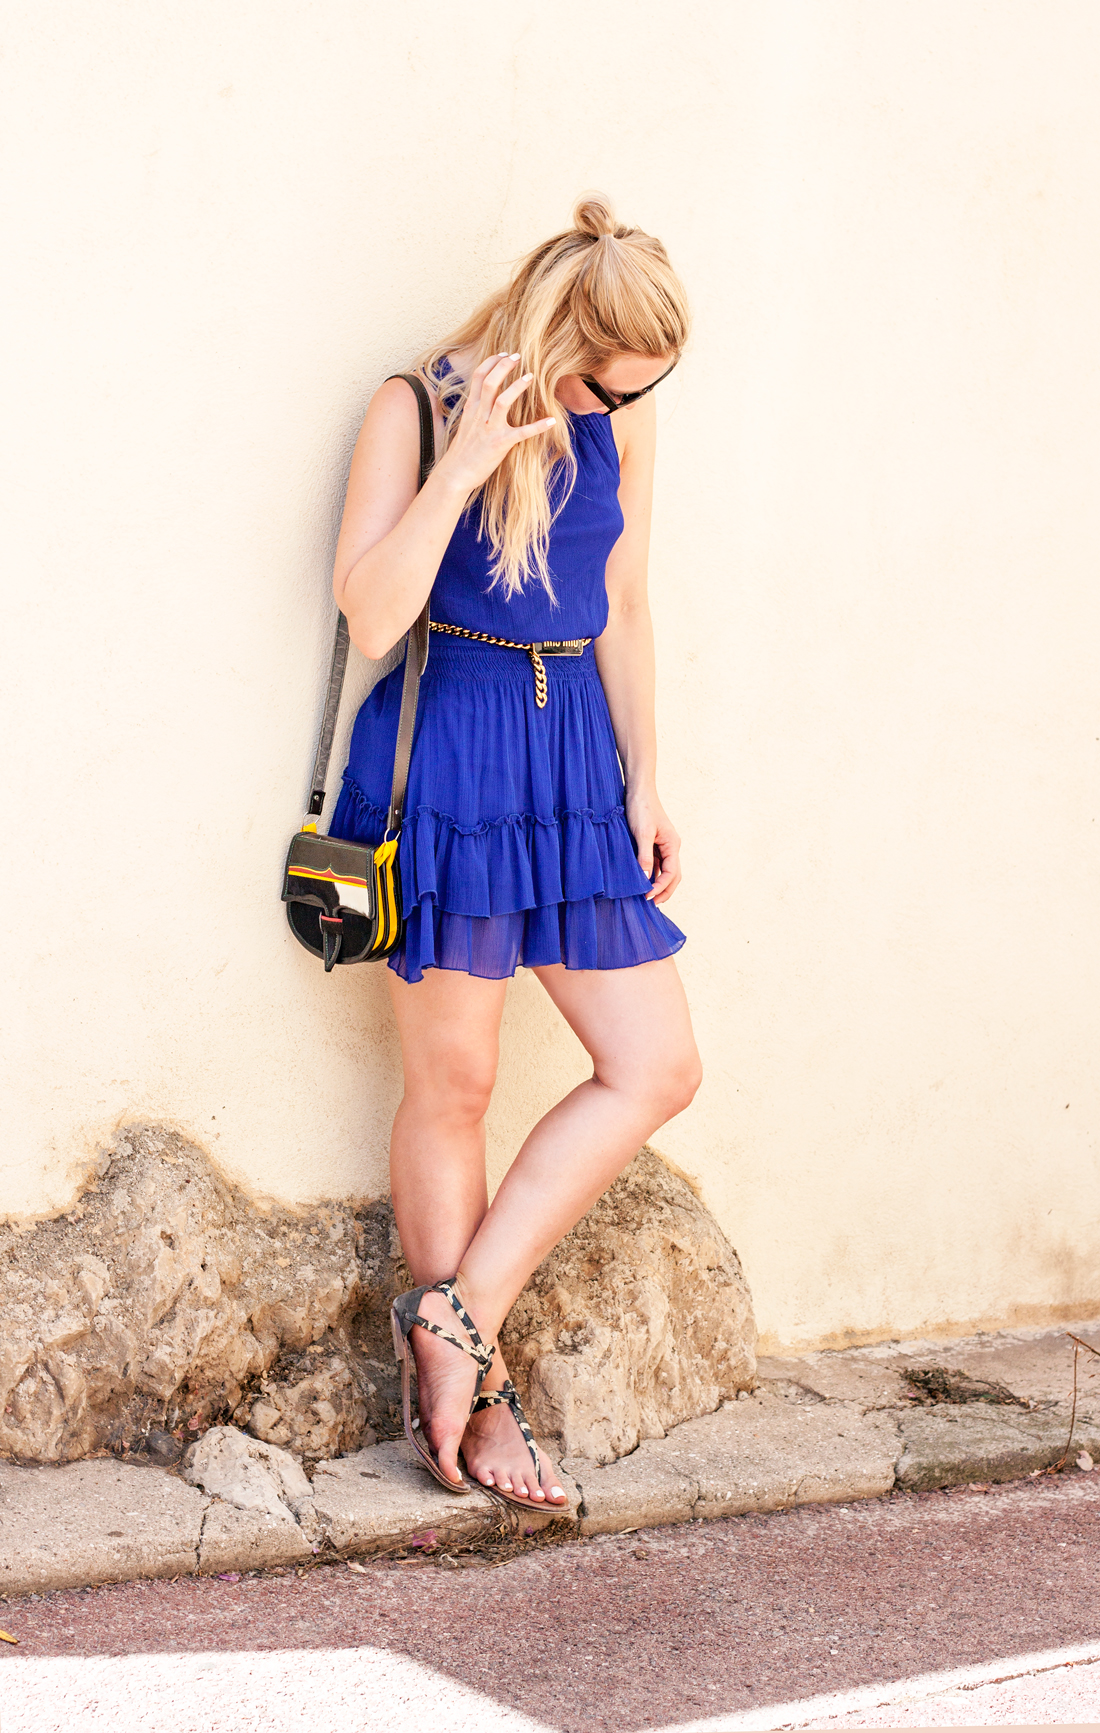 antibes old tow, antibes, antibes cactus, antibes street, blue dress zara, mii mii belt, vintage bag, hair knot, french riviera, swedish travel blog